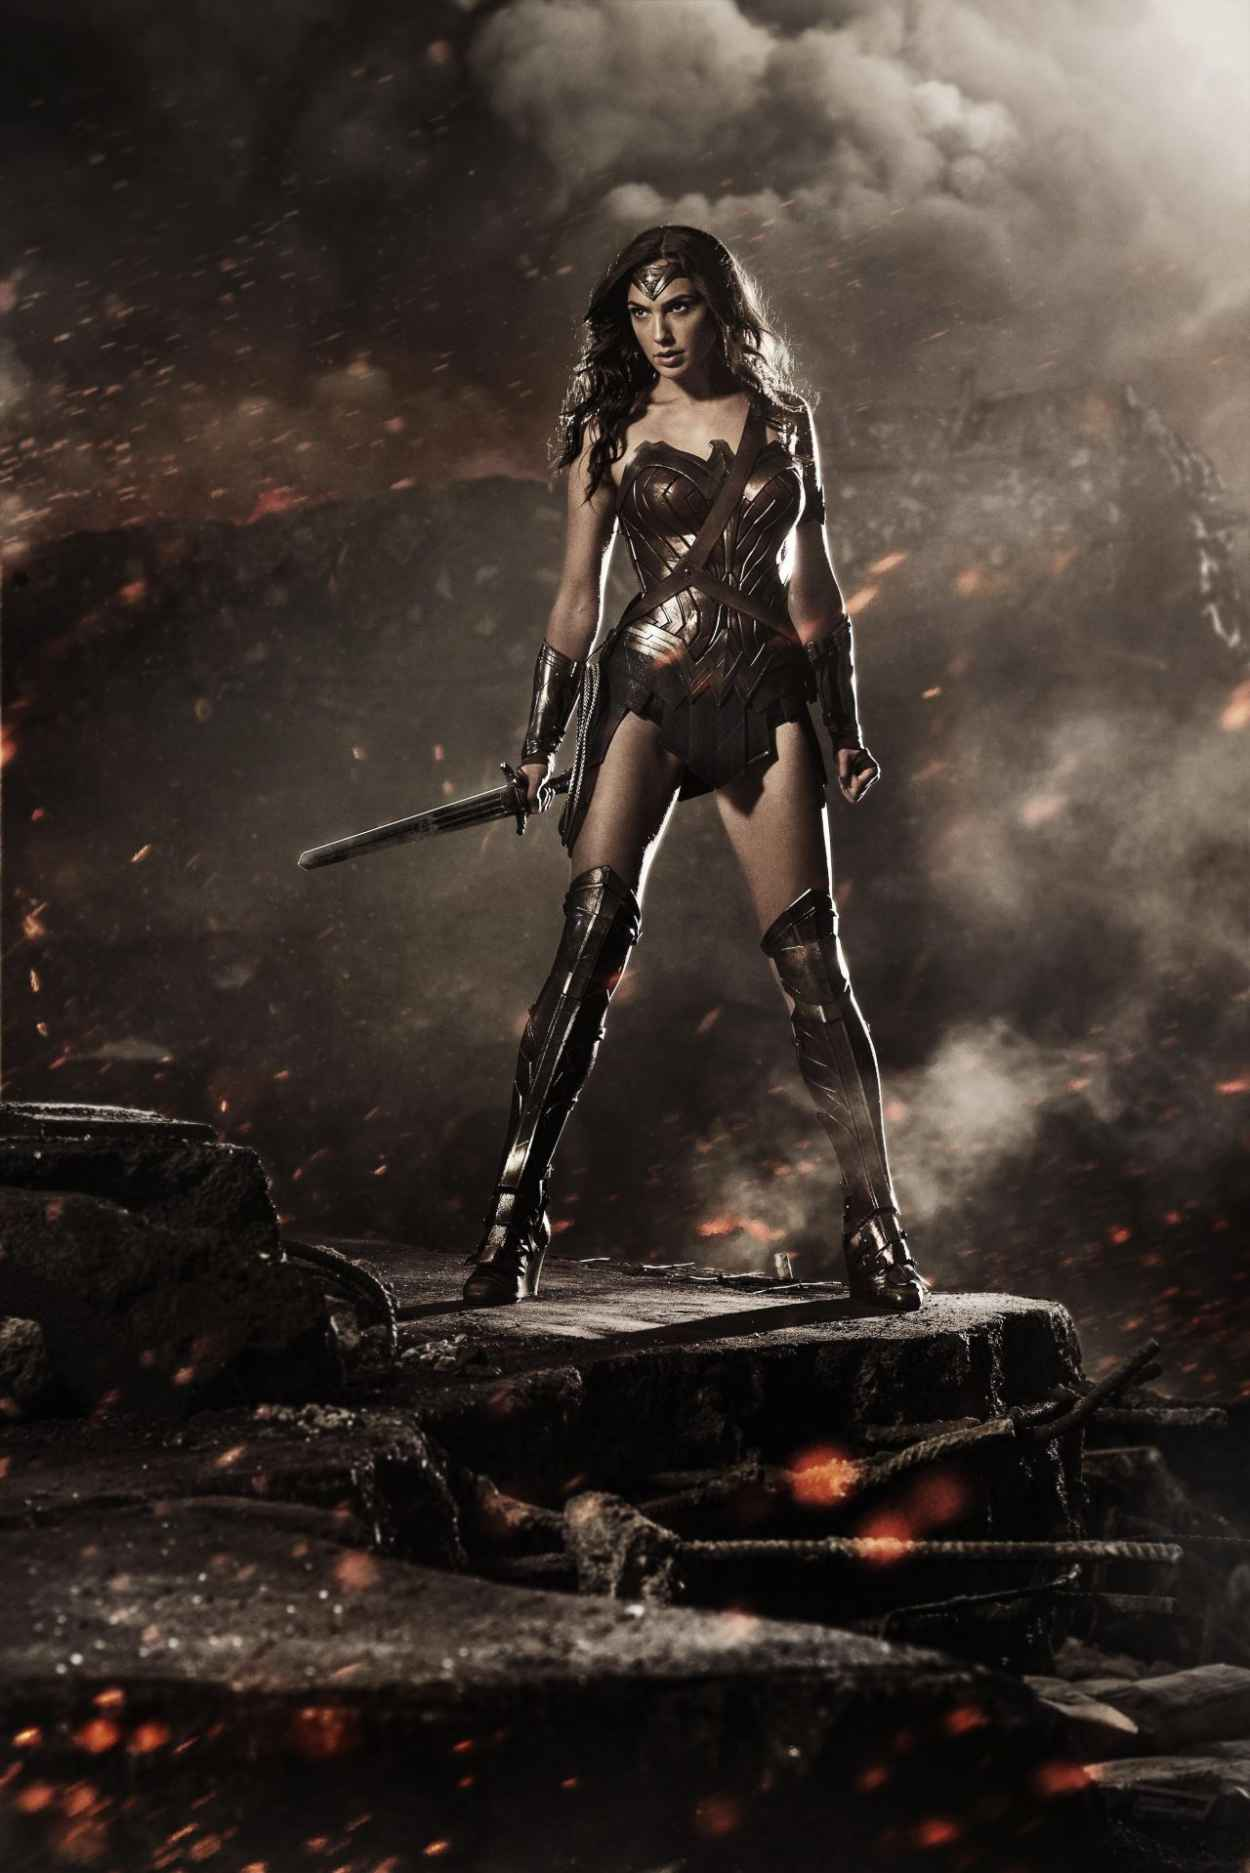 Gal Gadot - Wonder Woman Image Release at Comic-Con 2015 in San Diego-1